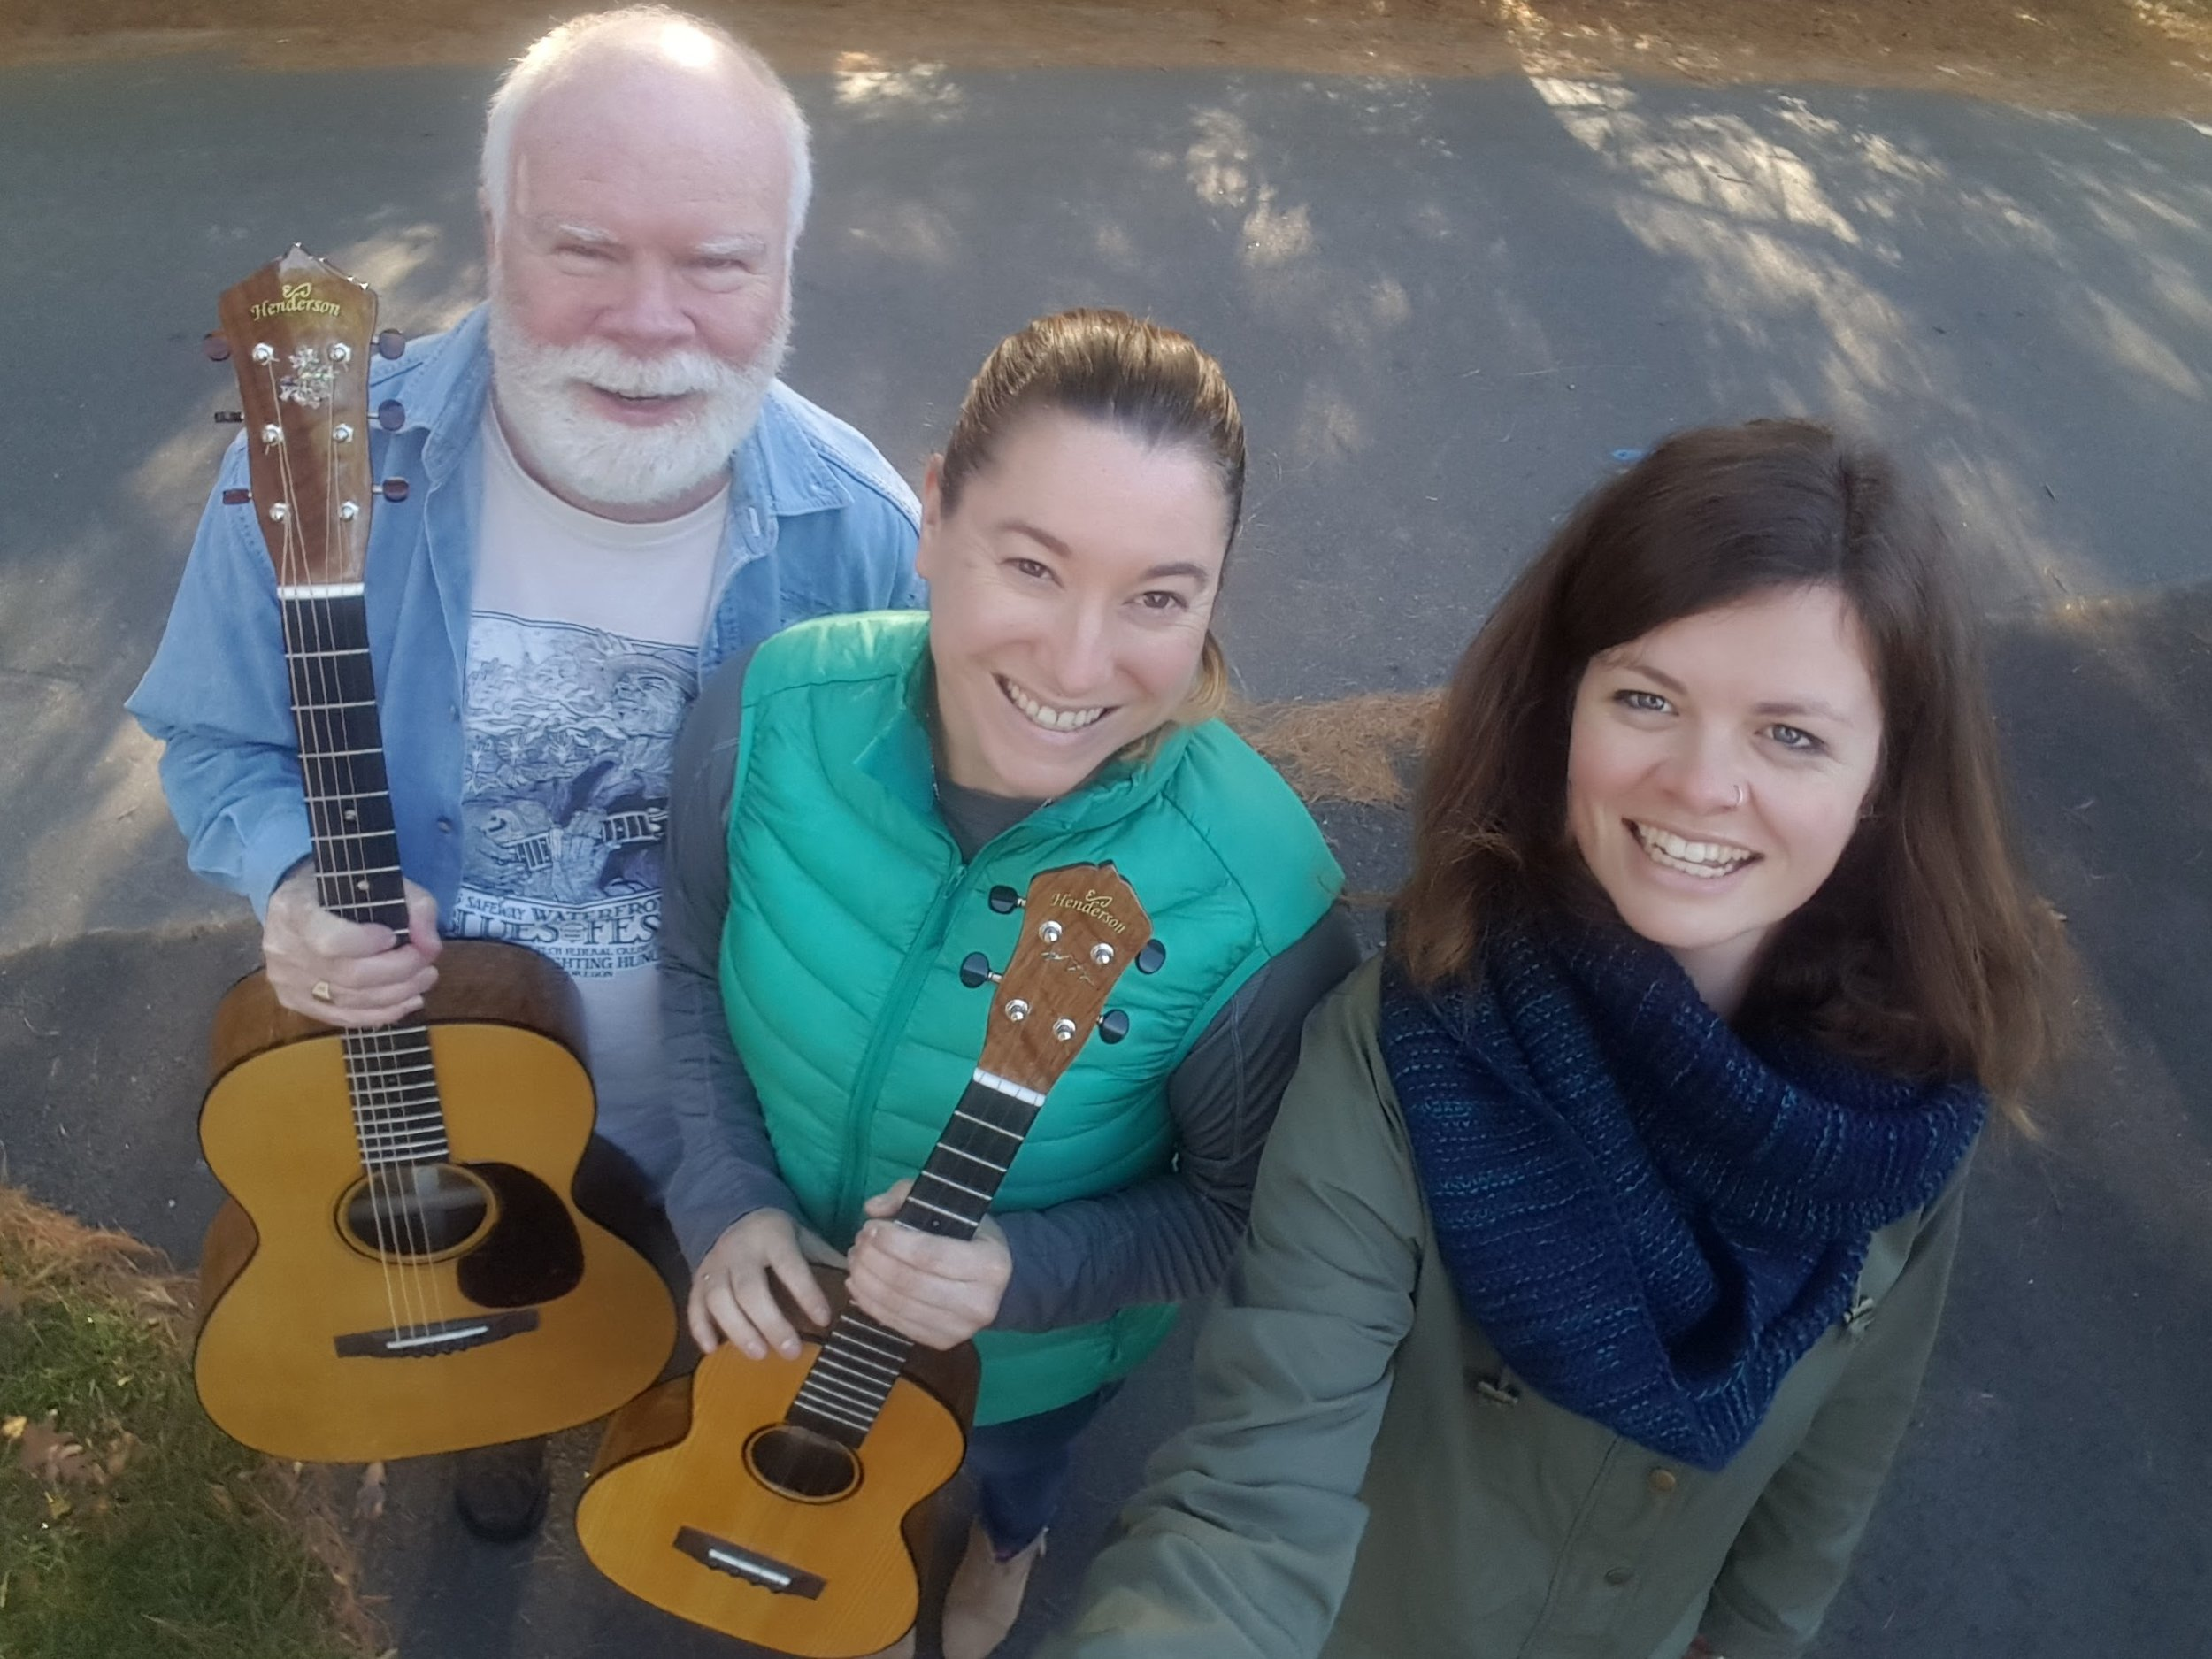 Richard and Katie came all the way from Australia to pick op their matching instruments: an oak OM and tenor ukulele!